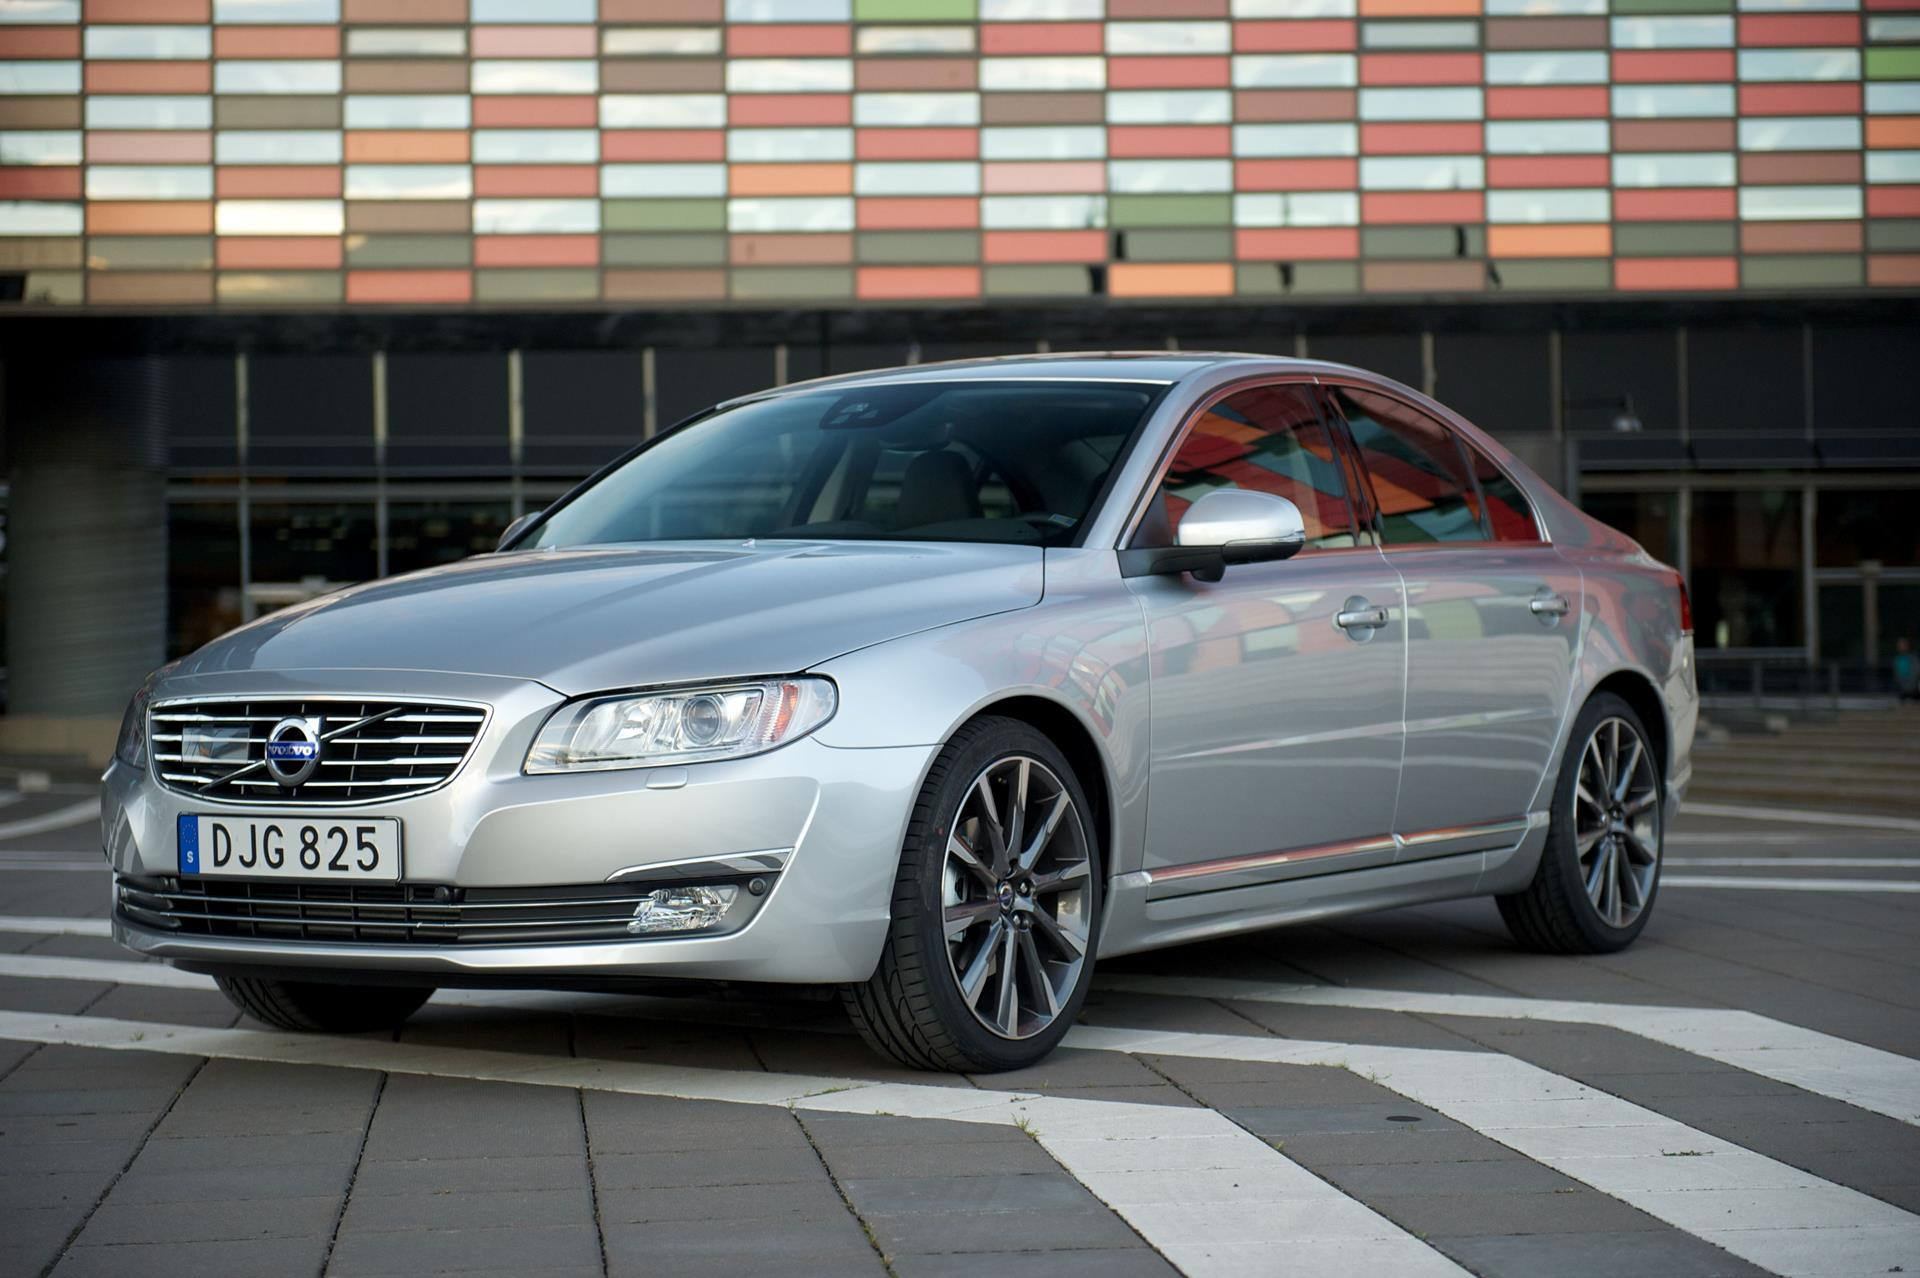 Dodge Muscle Car Wallpaper 2015 Volvo S80 News And Information Conceptcarz Com